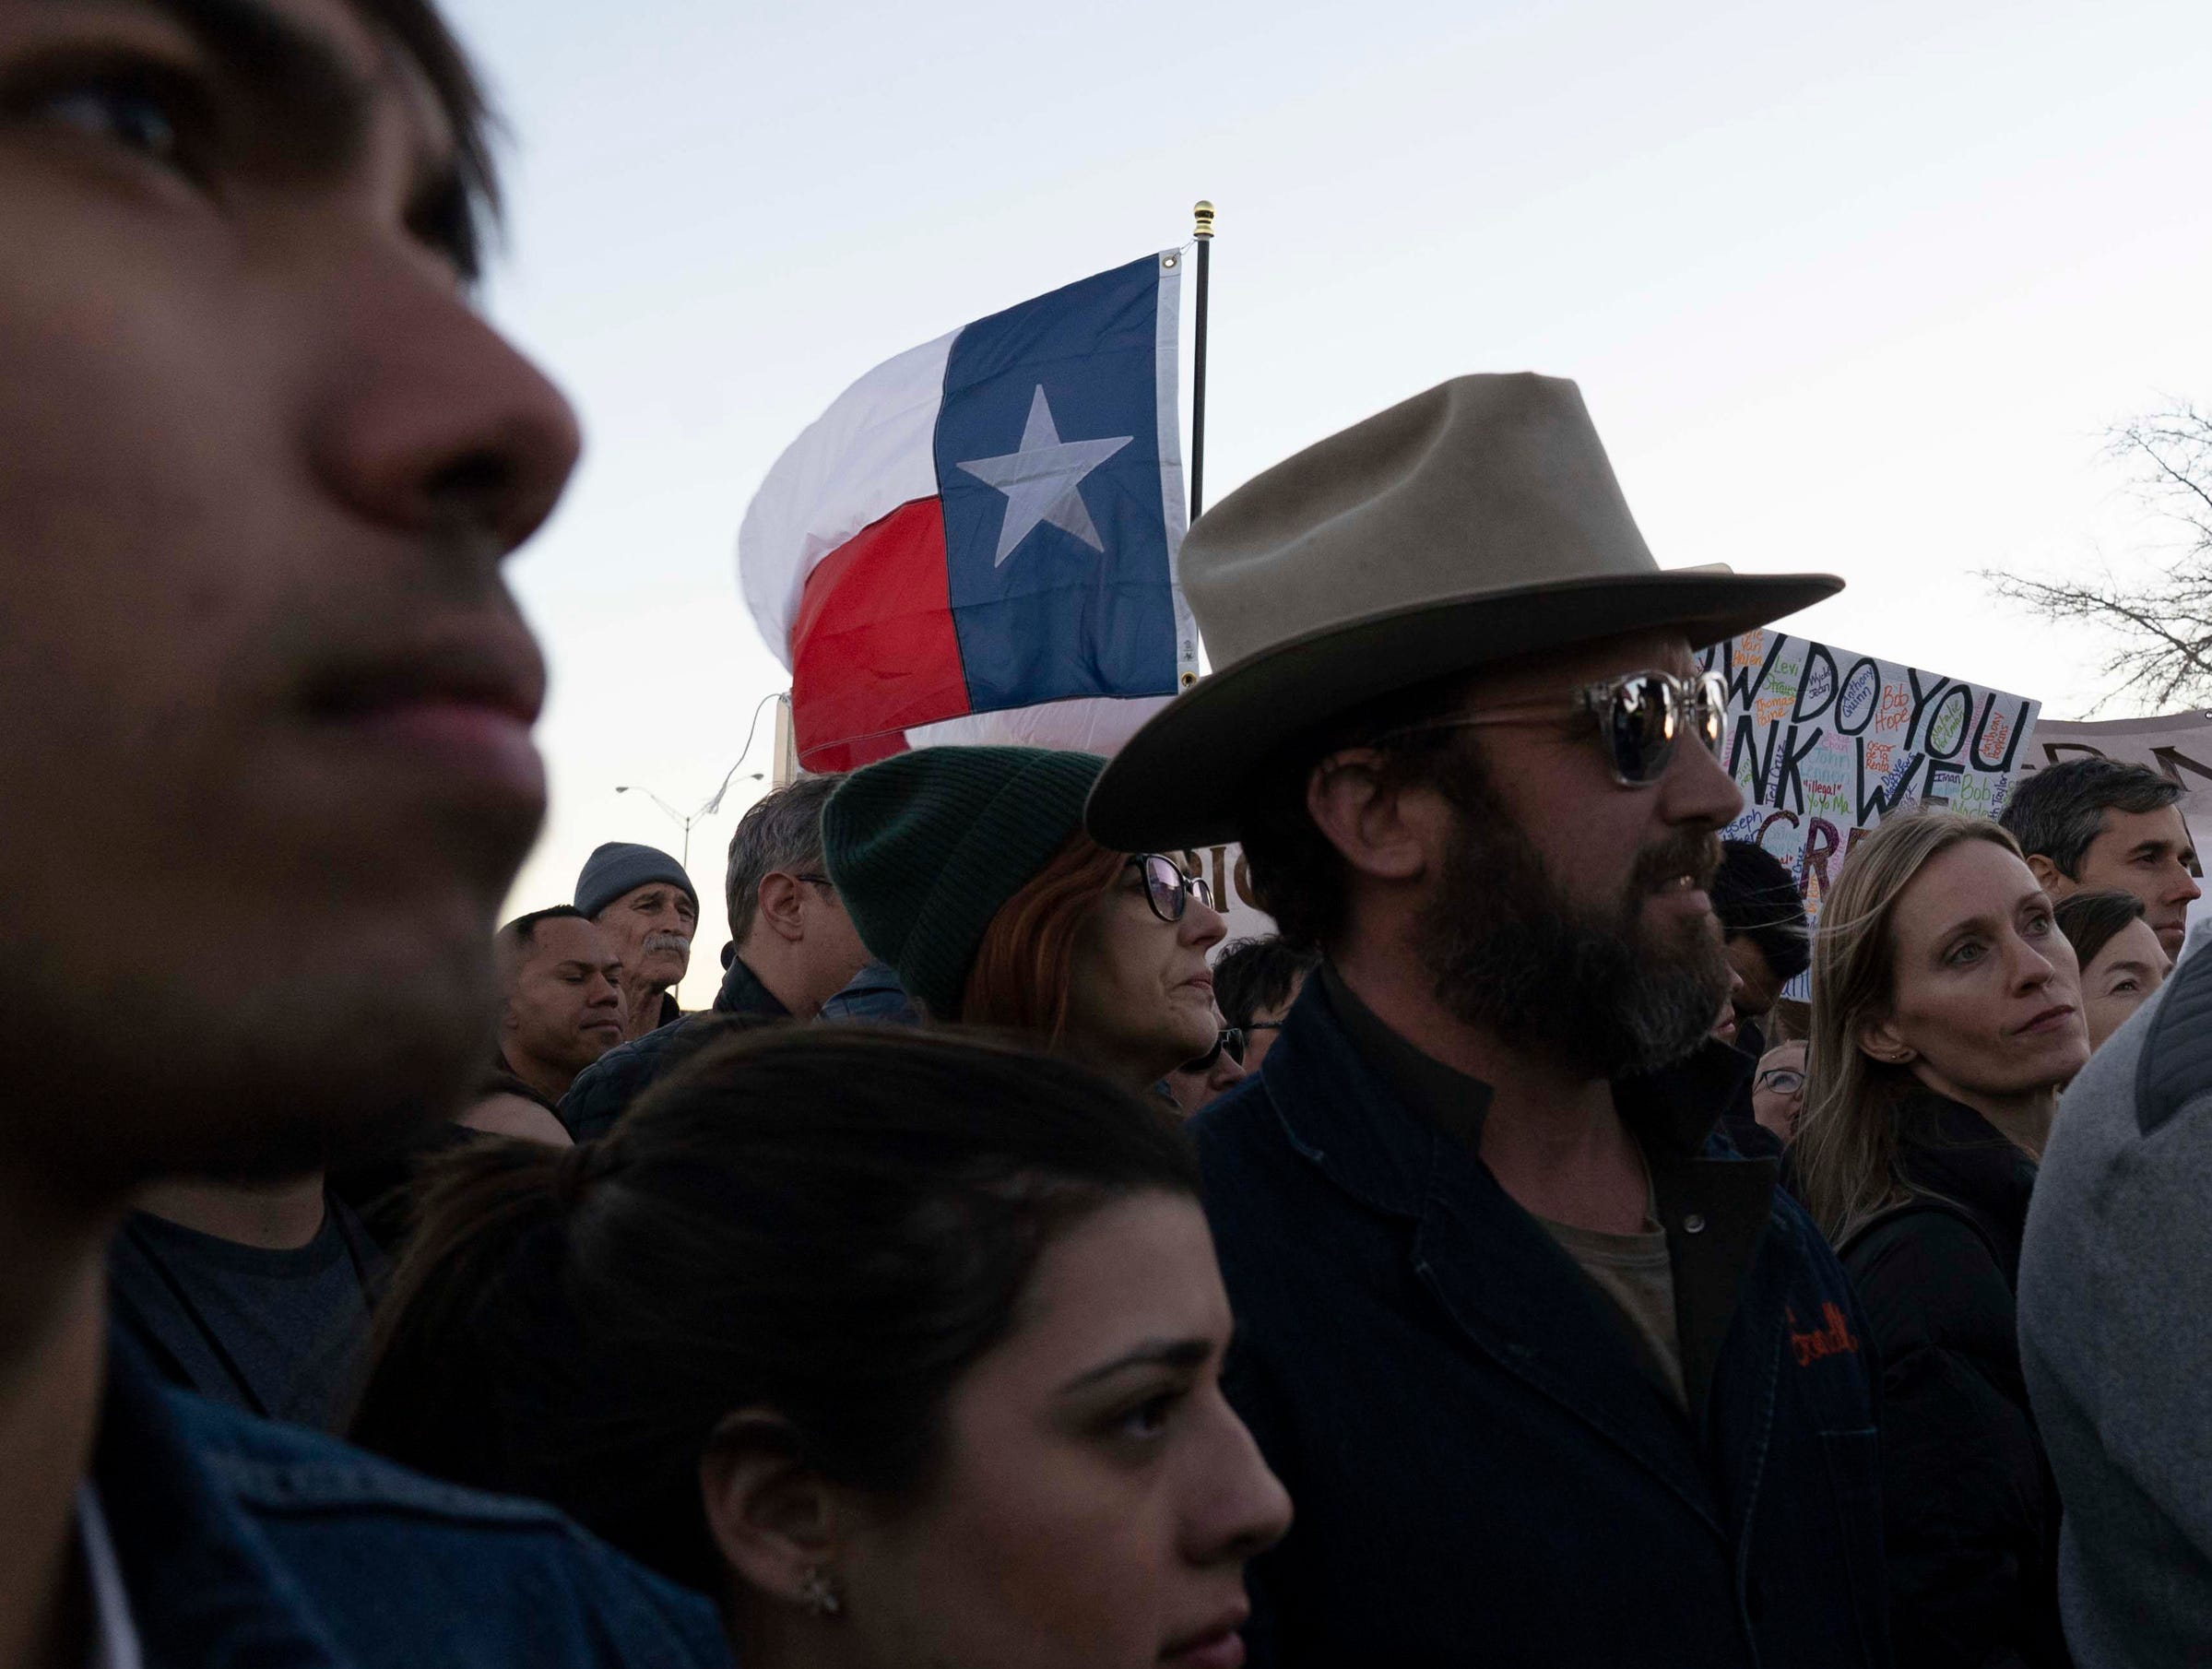 2/11/19 5:43:49 PM -- El Paso, TX, U.S.A  -- A counter-rally led by former U.S. Senate candidate Beto O'Rourke joined the March for Truth with hundreds of people along with Border Network for Human Rights, Women's March, to protest against President Trump campaign rally near El Paso County Coliseum on Feb. 11, 2019.